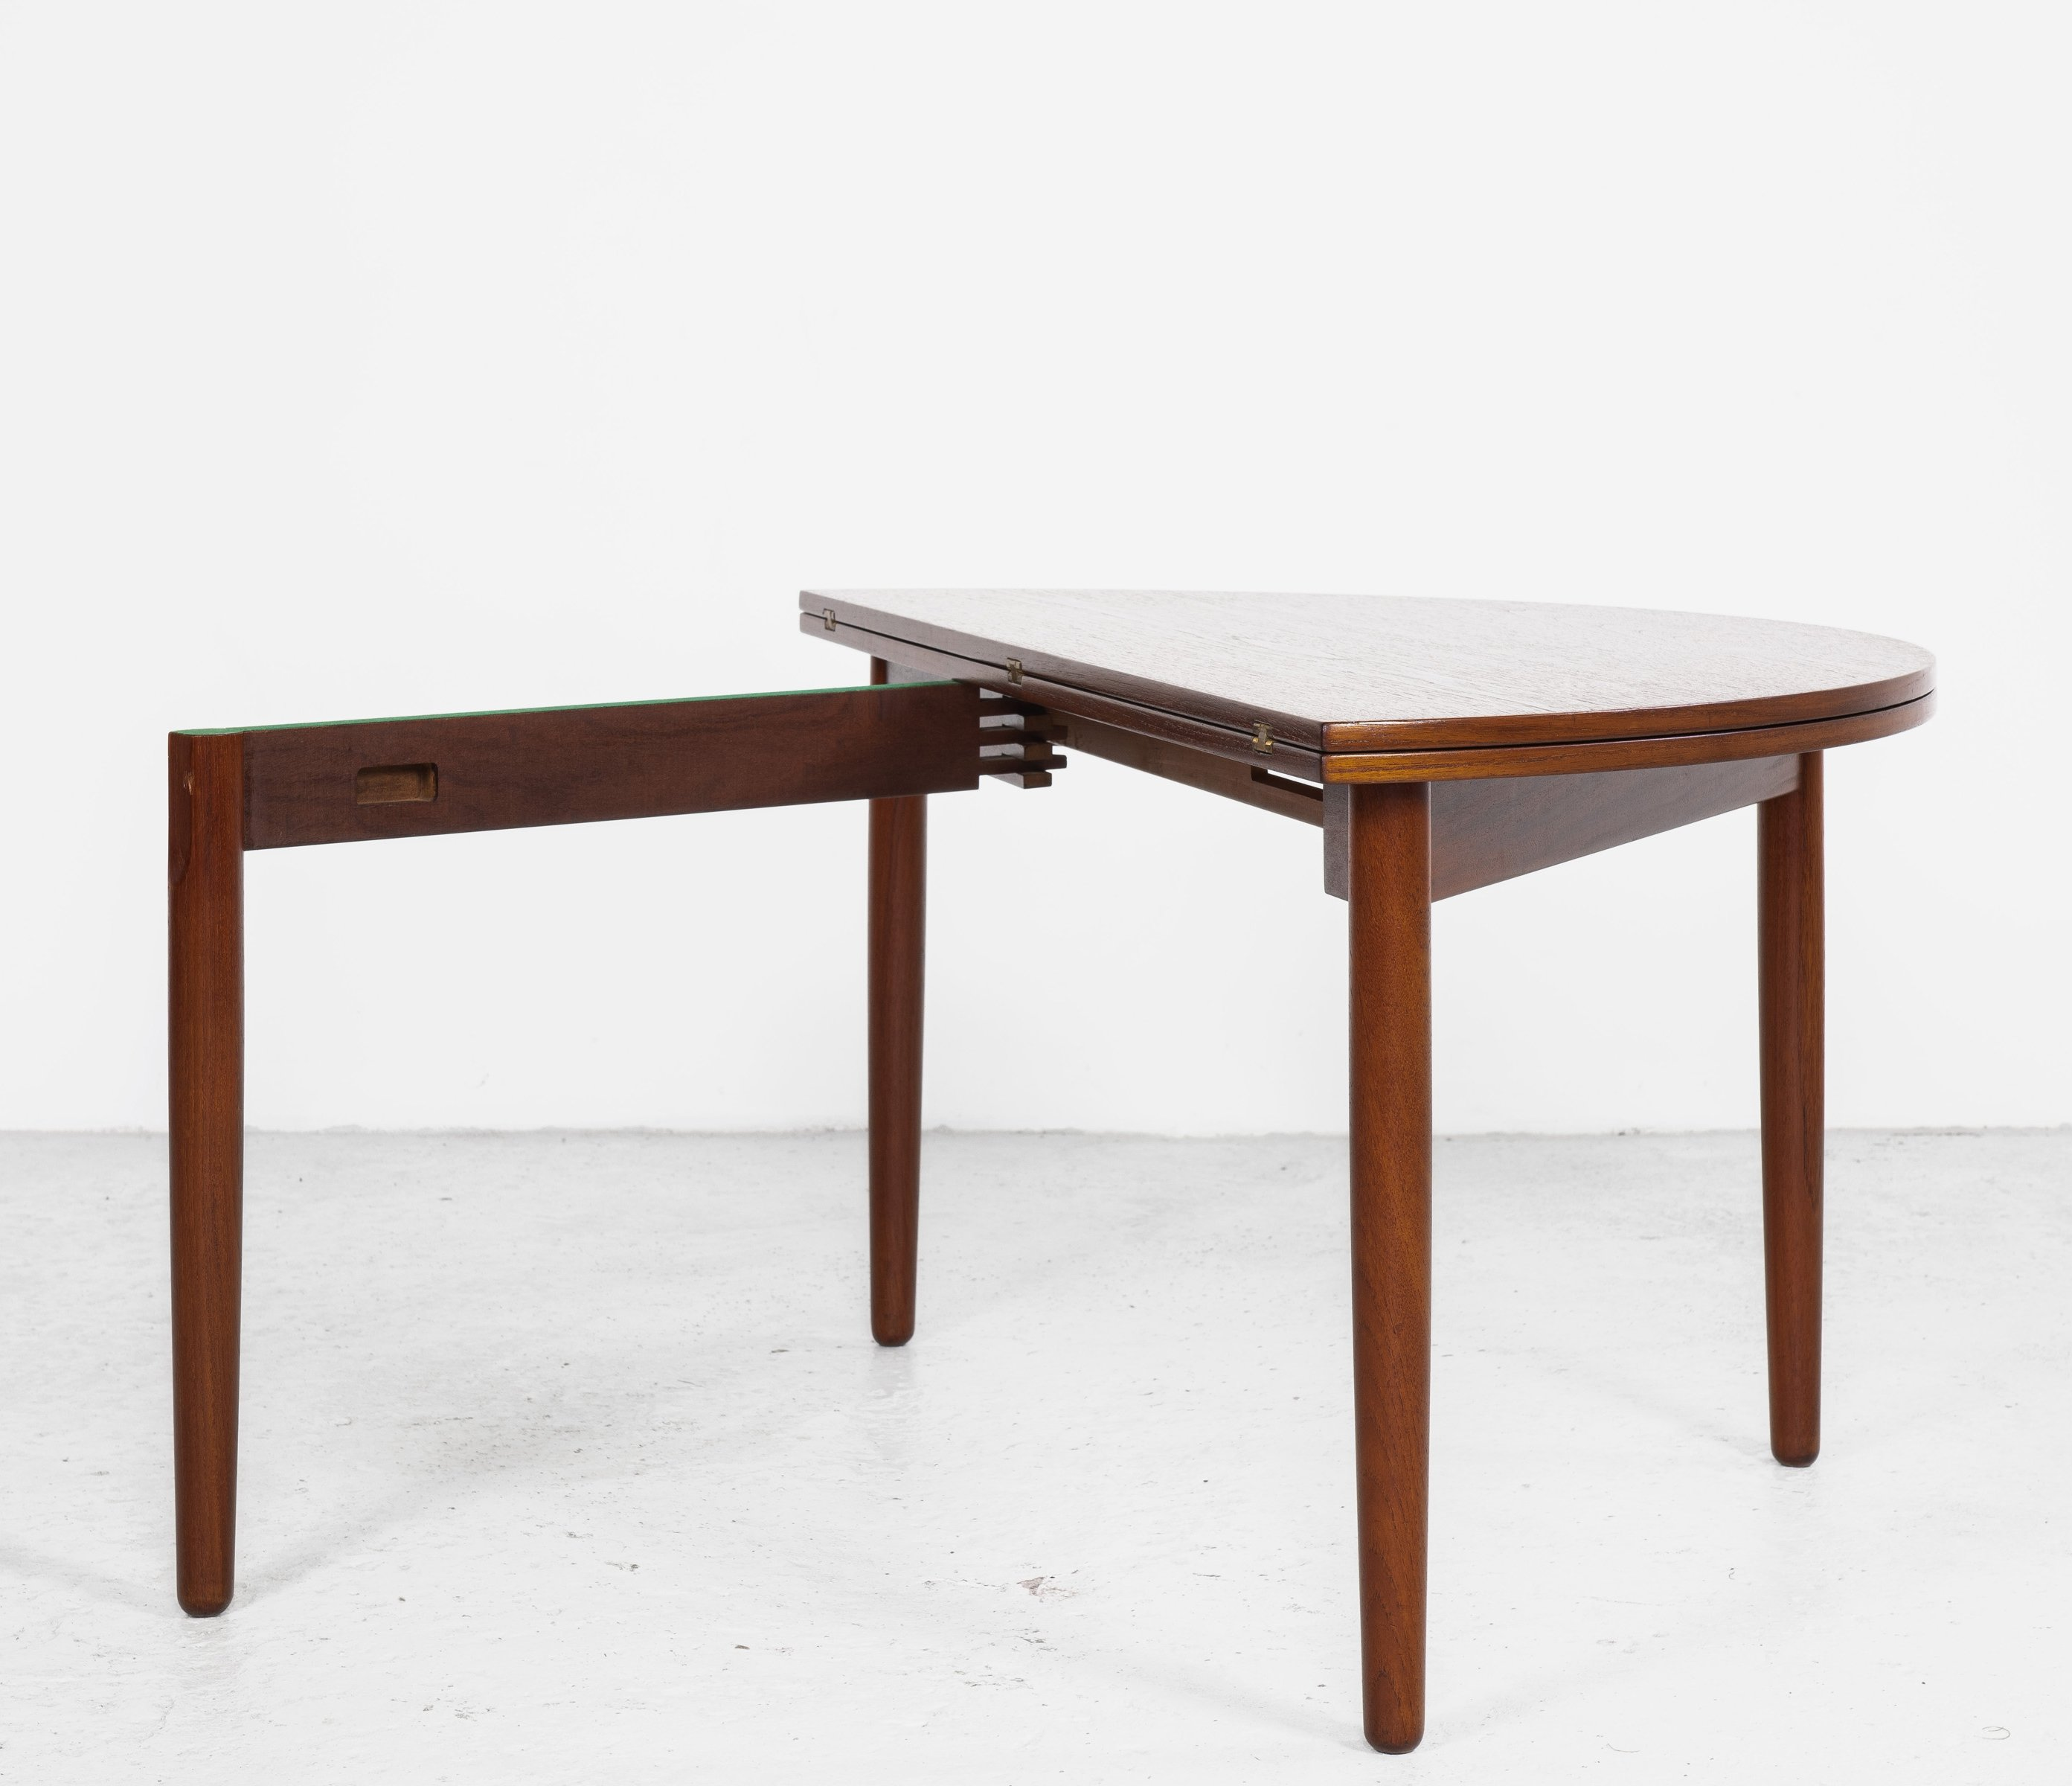 Picture of: Midcentury Danish Console Coffee Table In Teak By Poul Volther For Frem Rojle 141133